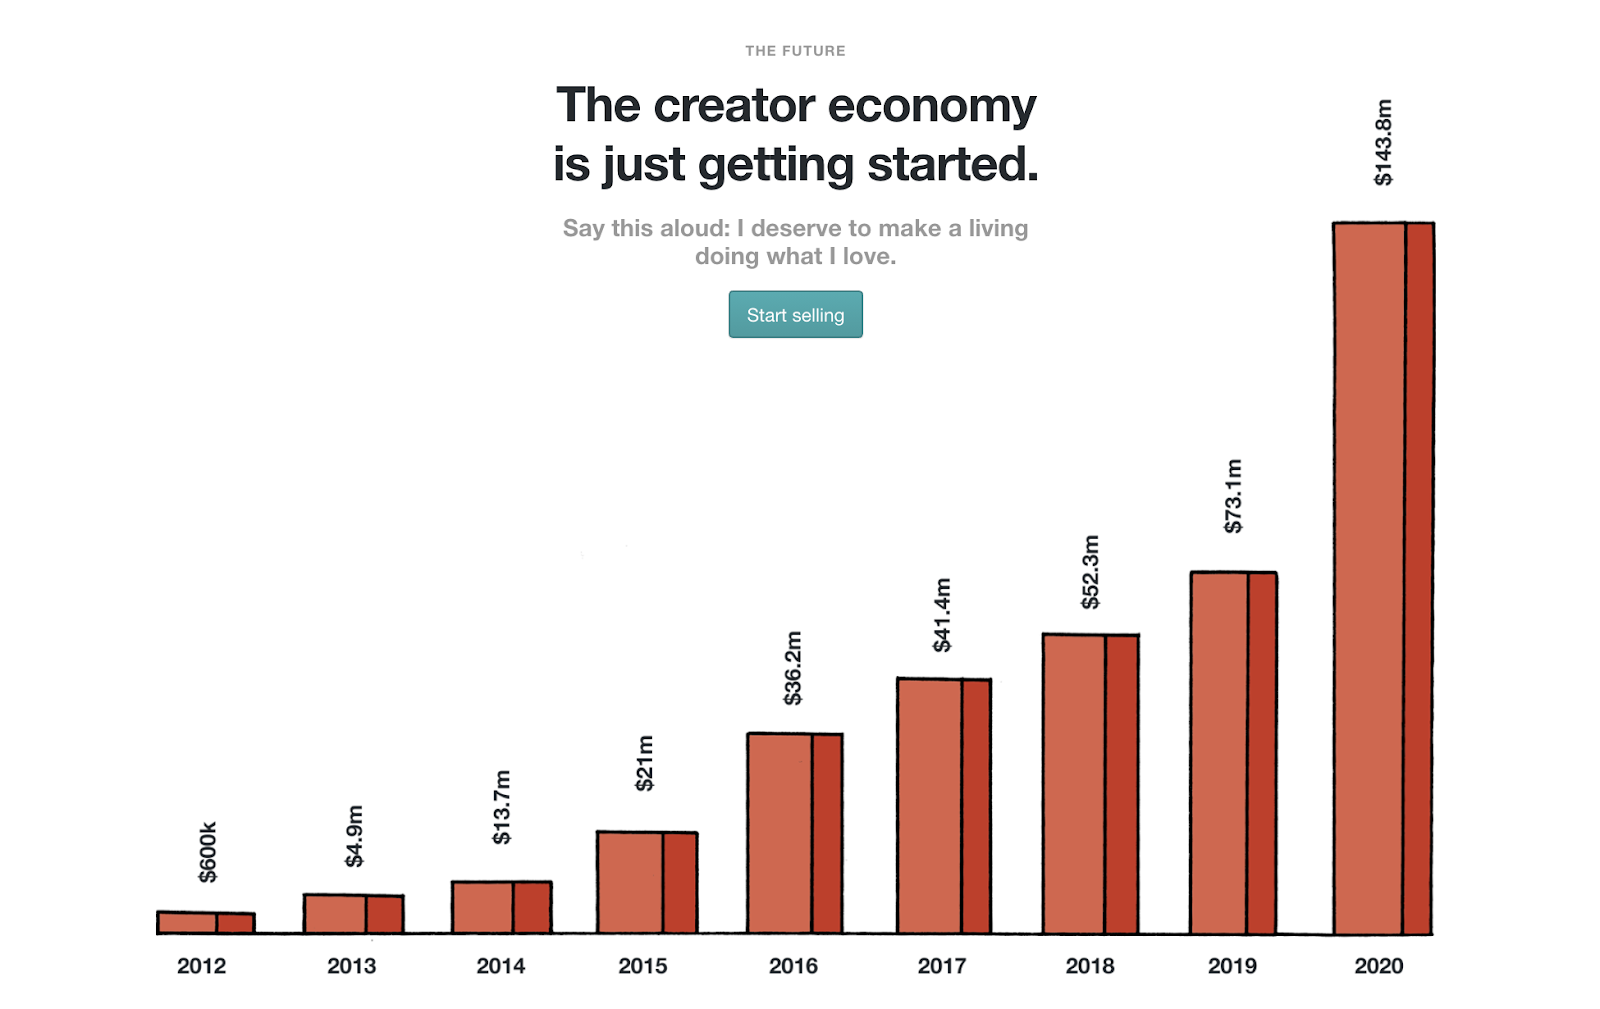 Gumroad: The creator economy is taking off. Make sure you get all of those payments you deserve.